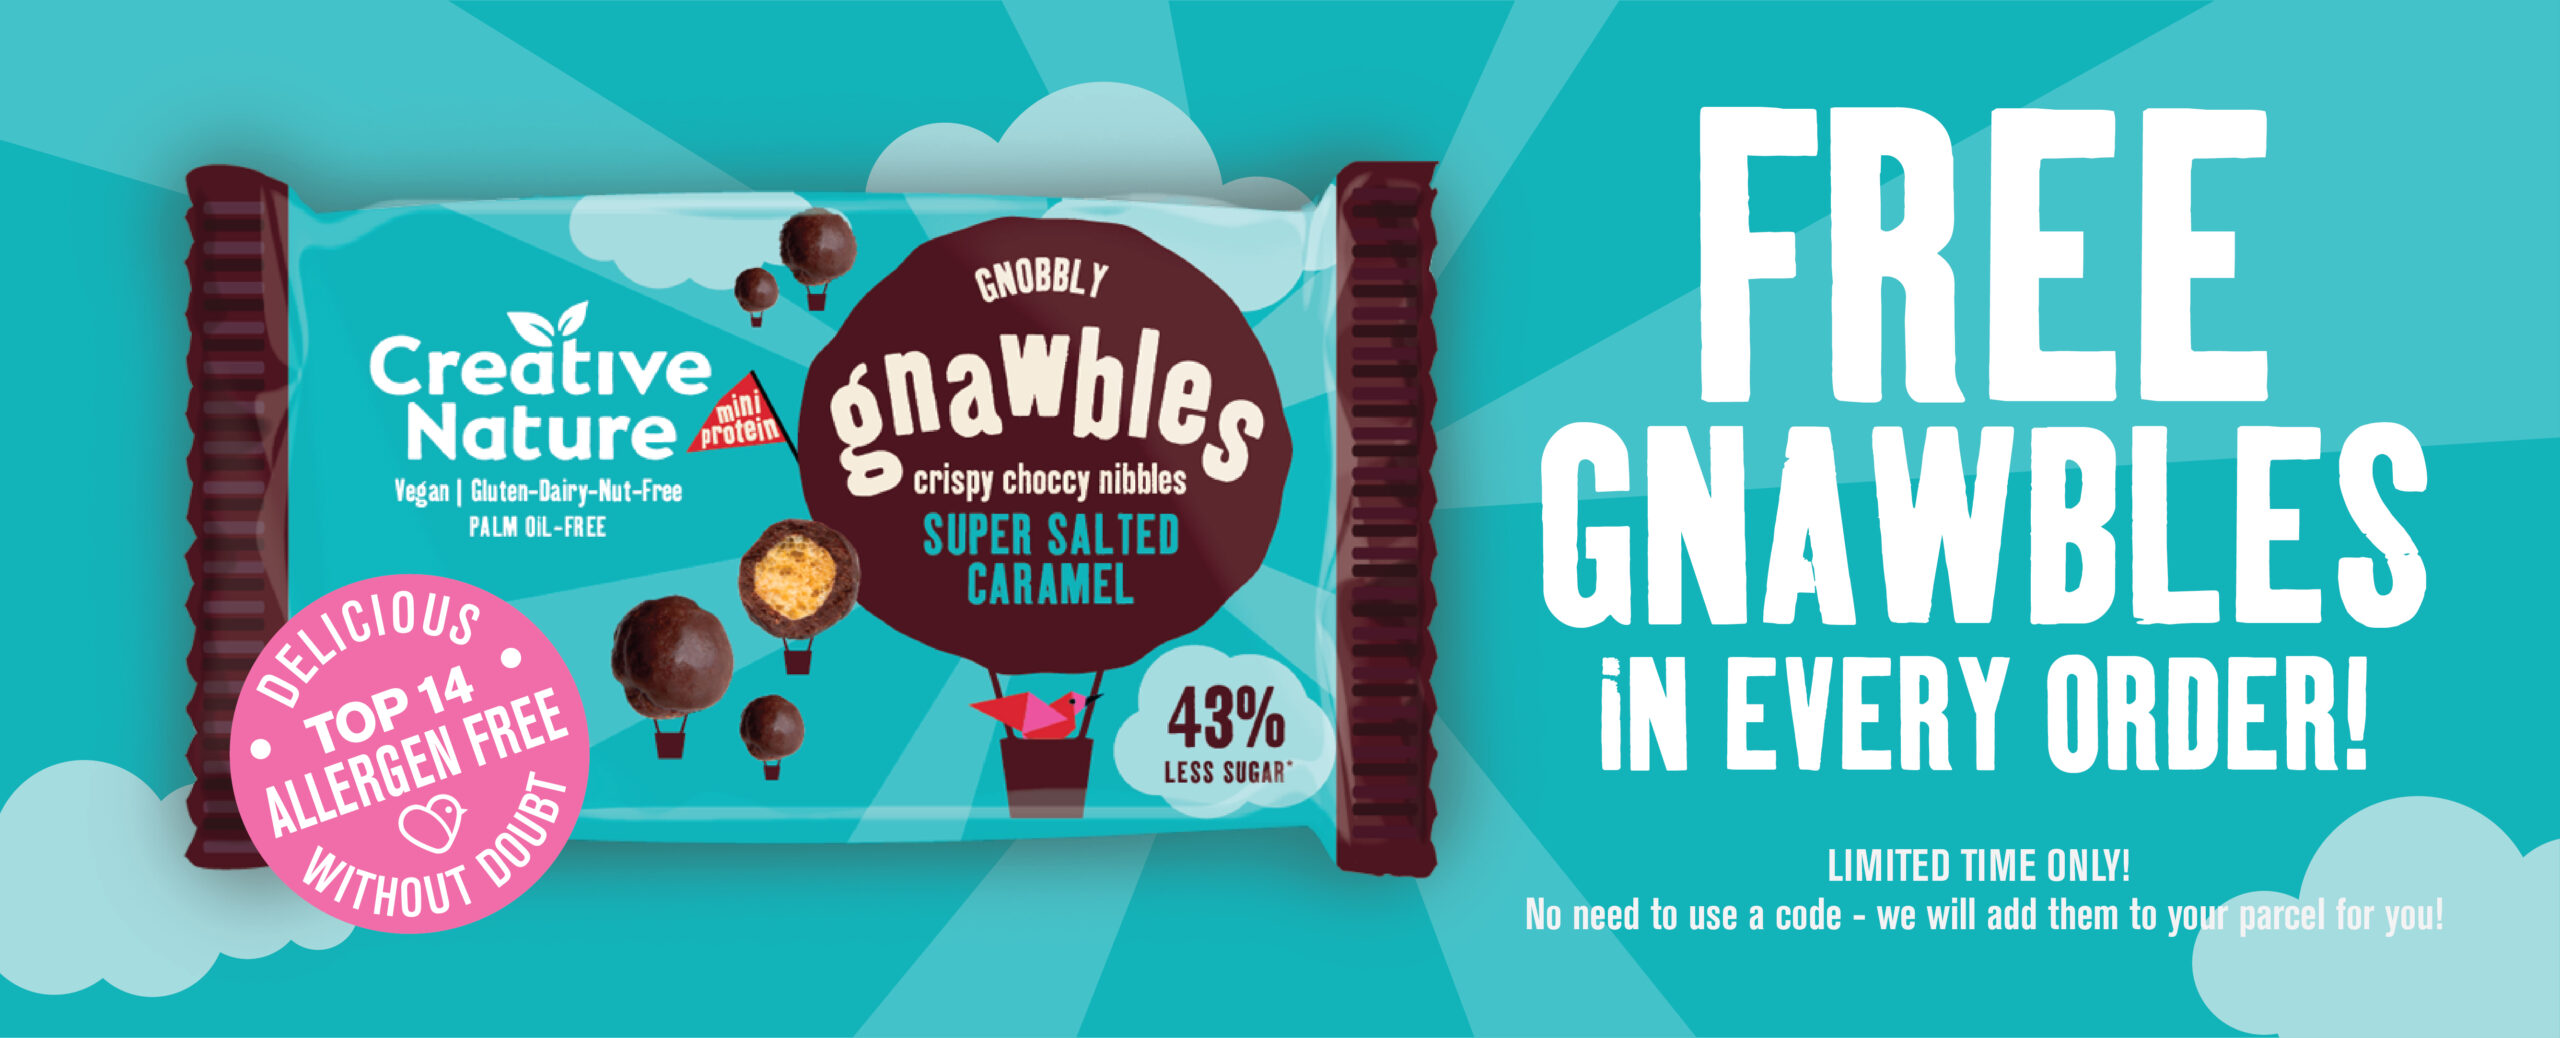 Free Salted Caramel Gnawbles with every order!